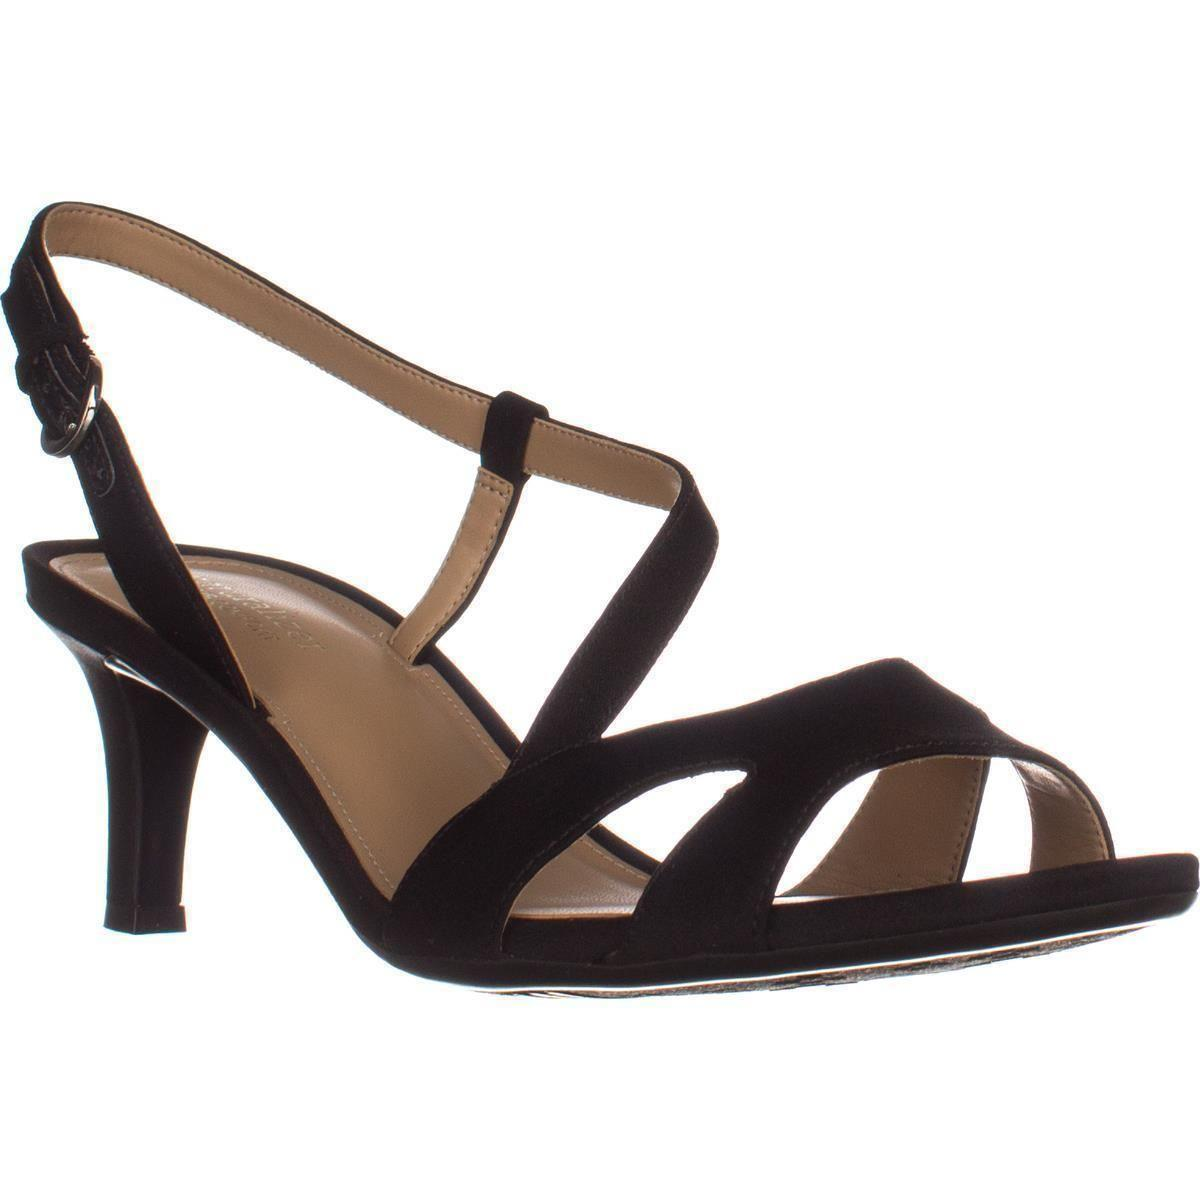 da9016d5338c Lyst - Naturalizer Harmony Strappy Comfrot Sandals in Black - Save 14%